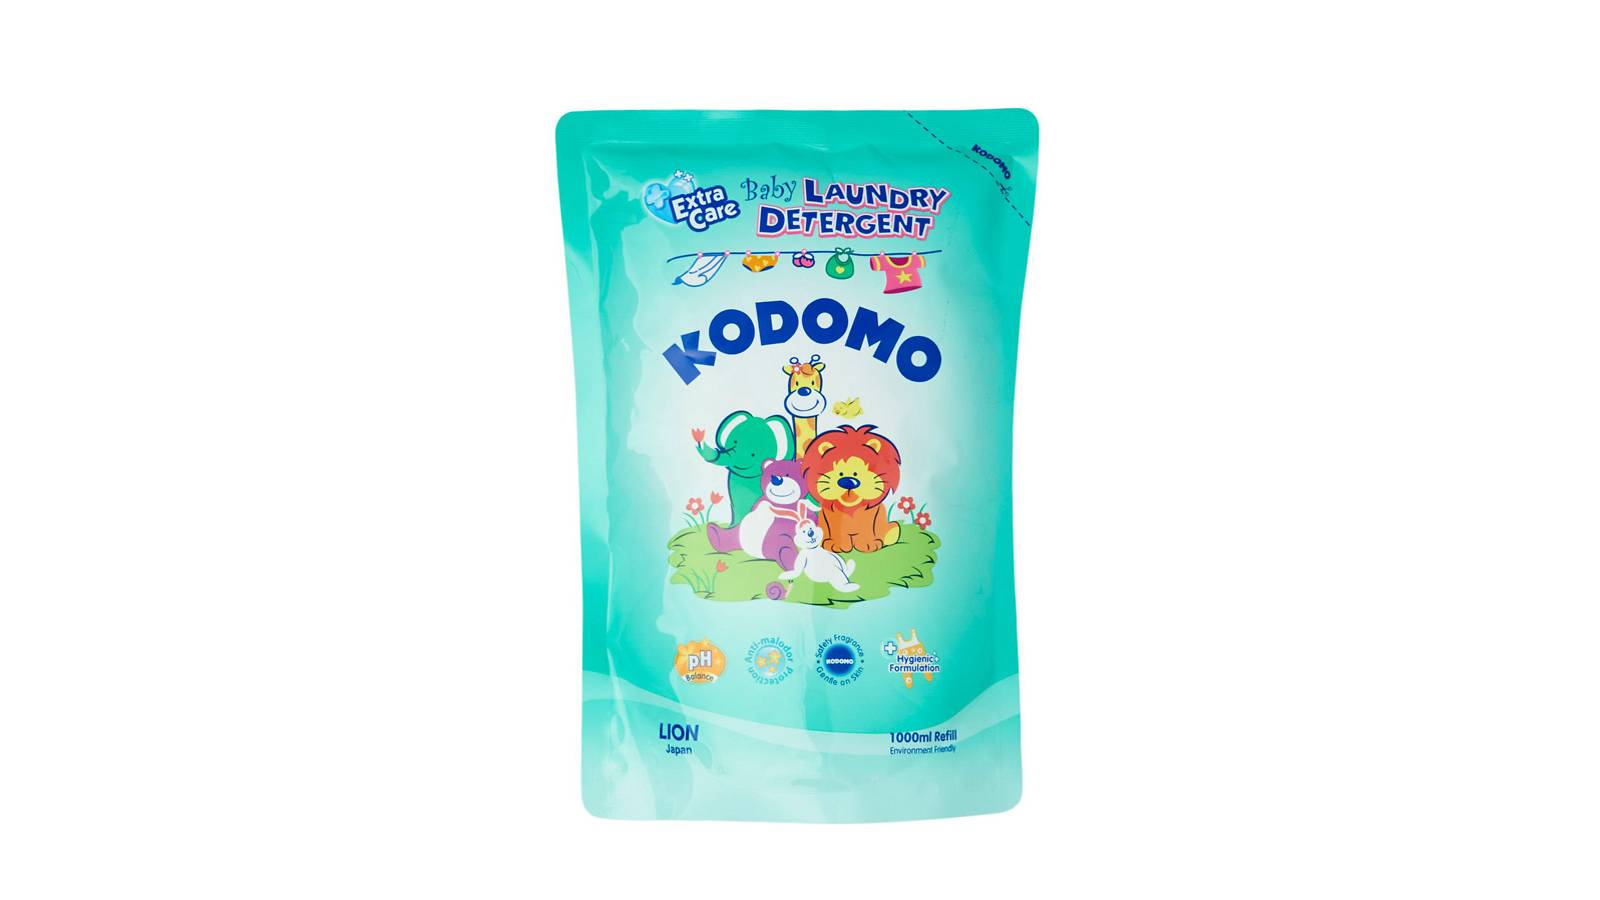 Babies-BUYER'S-GUIDE-7-best-laundry-detergents-for-baby-KODOMOExtraCare